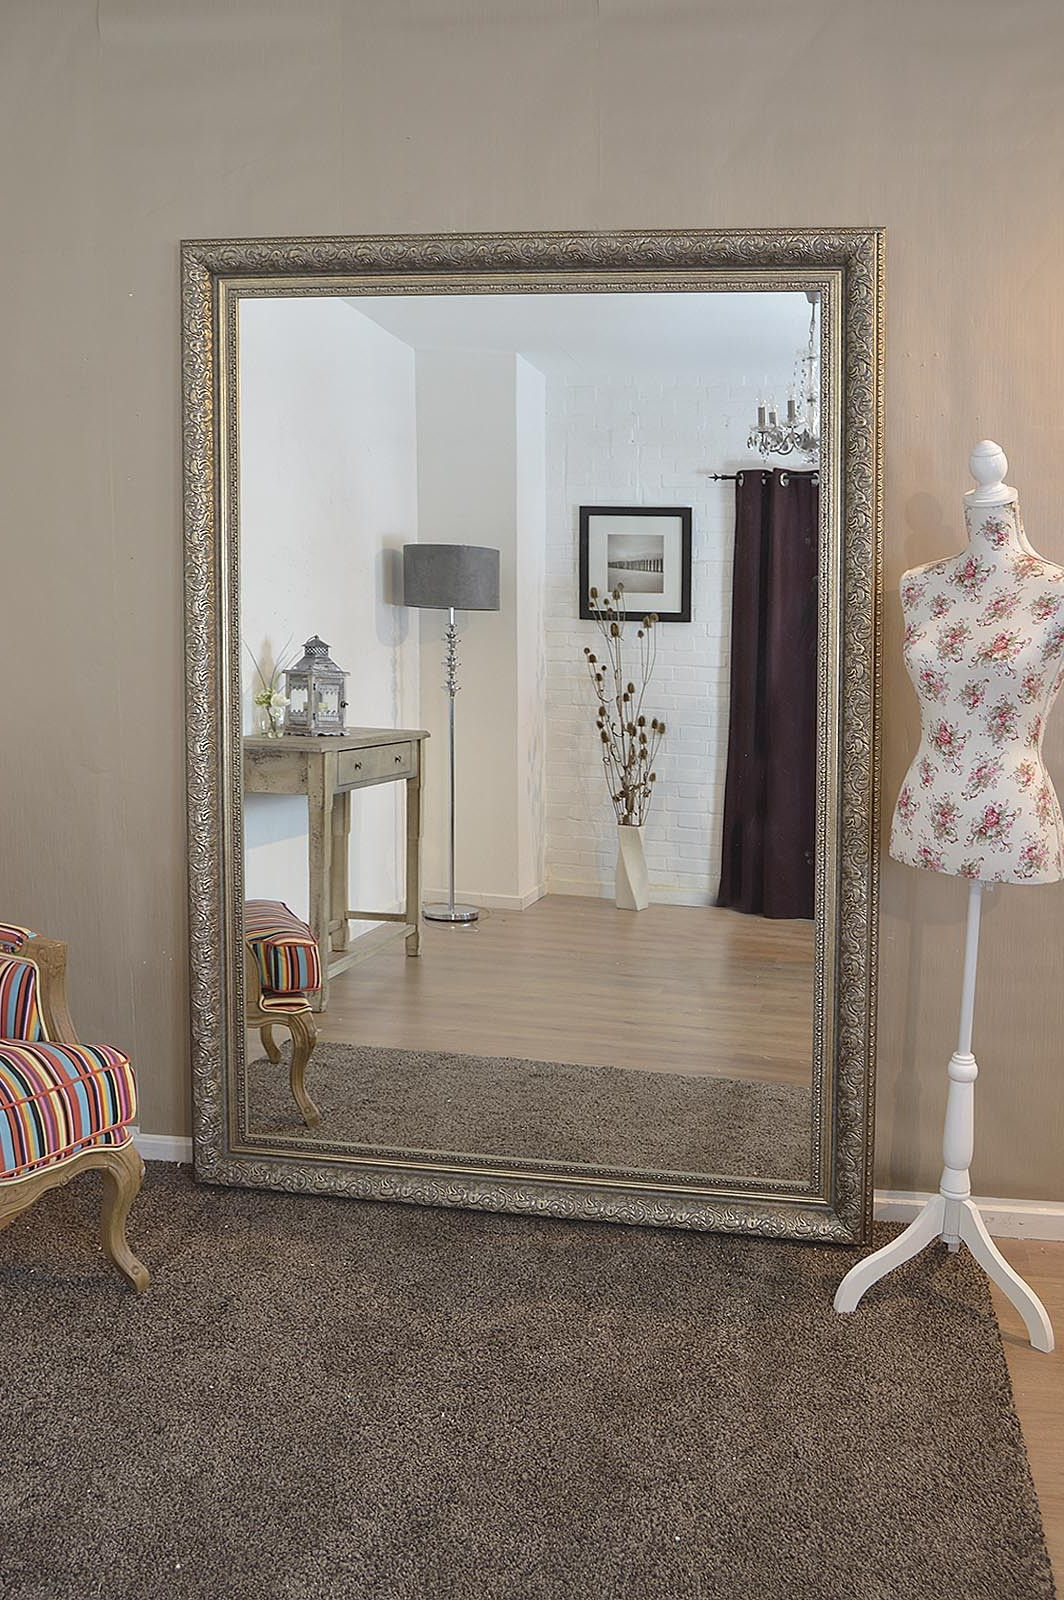 Big Wall Mirrors For Most Popular Large Silver Ornate Decorative Big Wall Mirror 7ft X 5ft (208cm X (View 2 of 20)